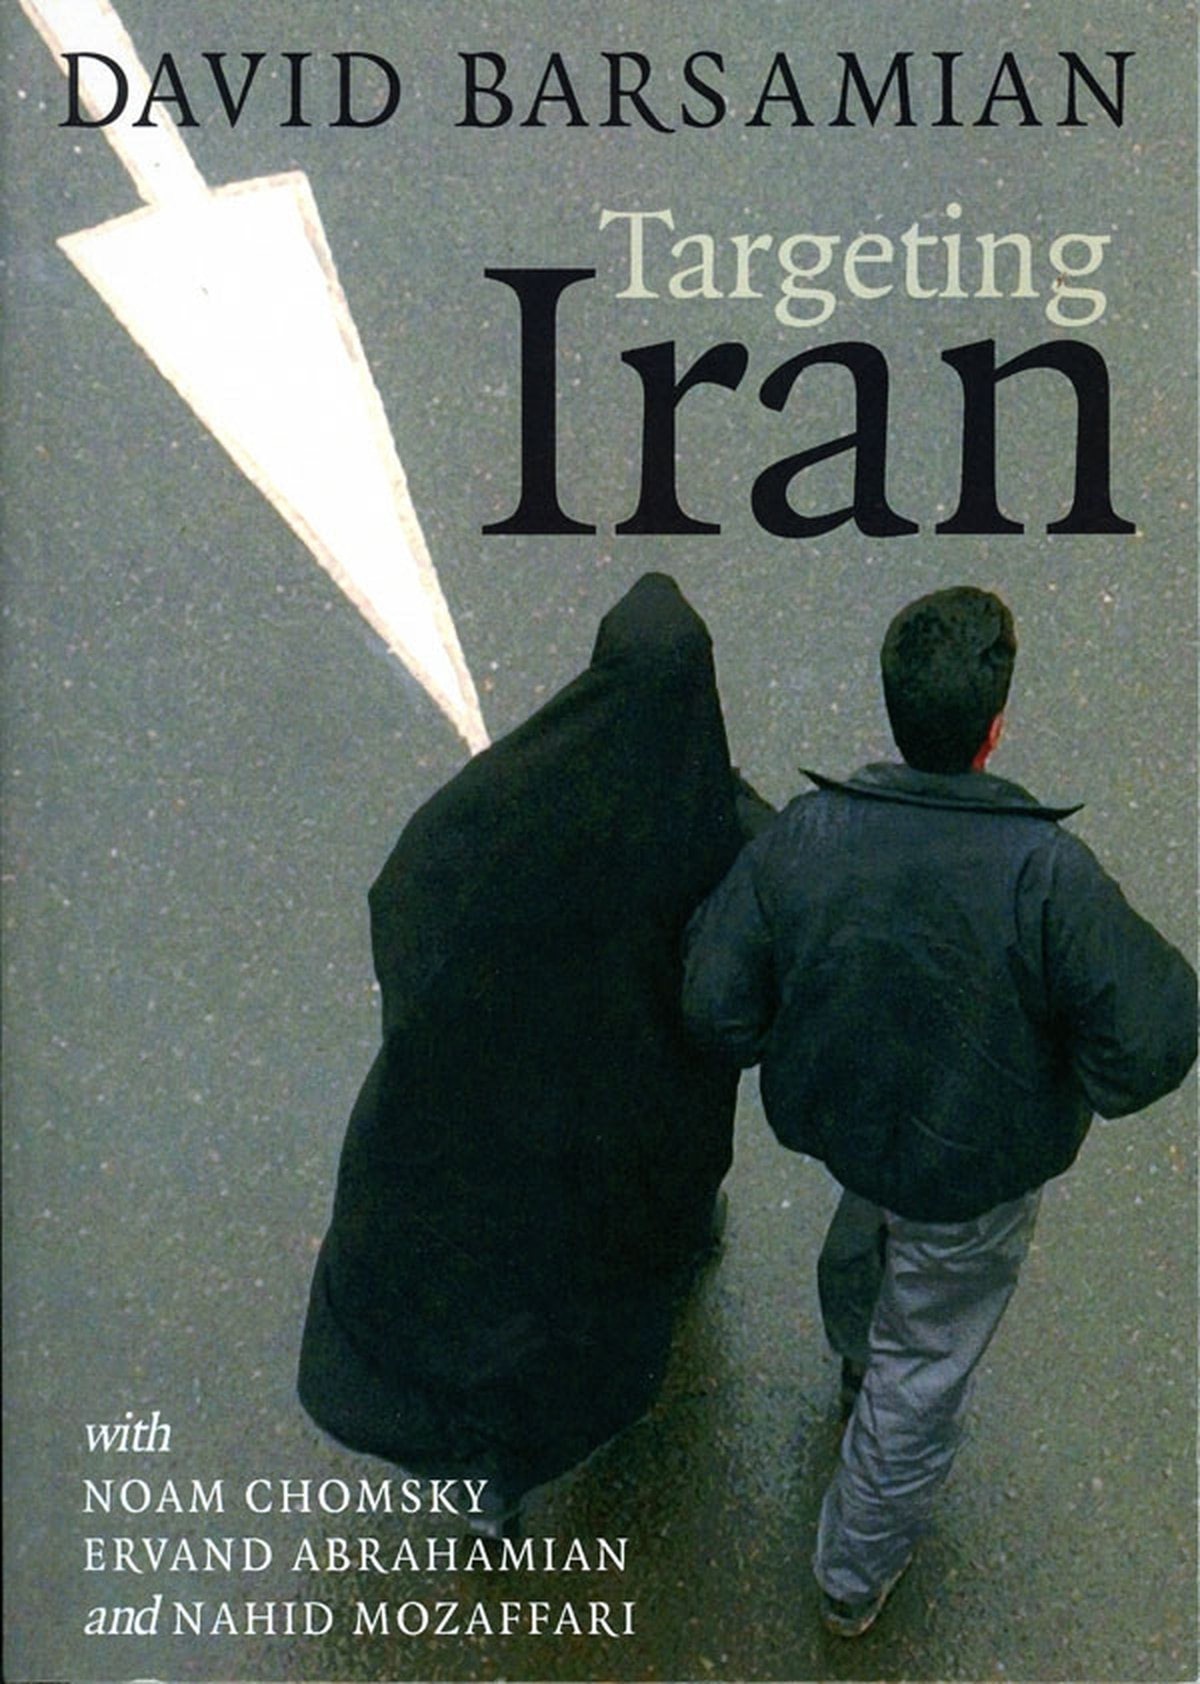 In Targeting Iran, his 2007 book with Noam Chomsky, Barsamian explores the historical context informing US-Iranian relations.